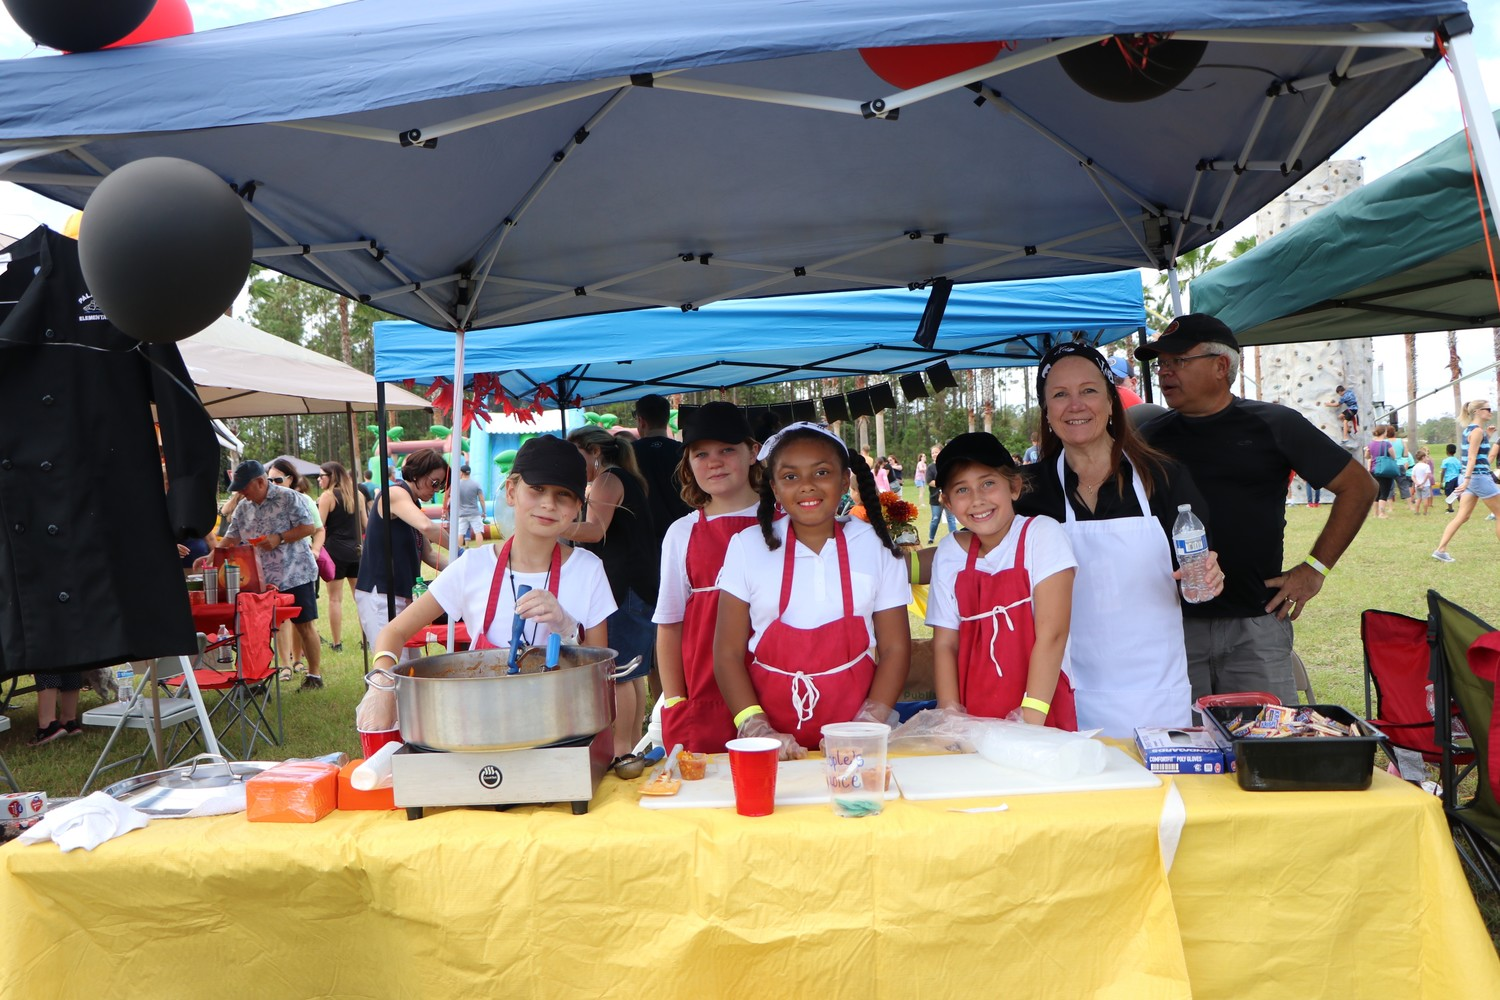 A team of local kids participates in the chili cook-off.